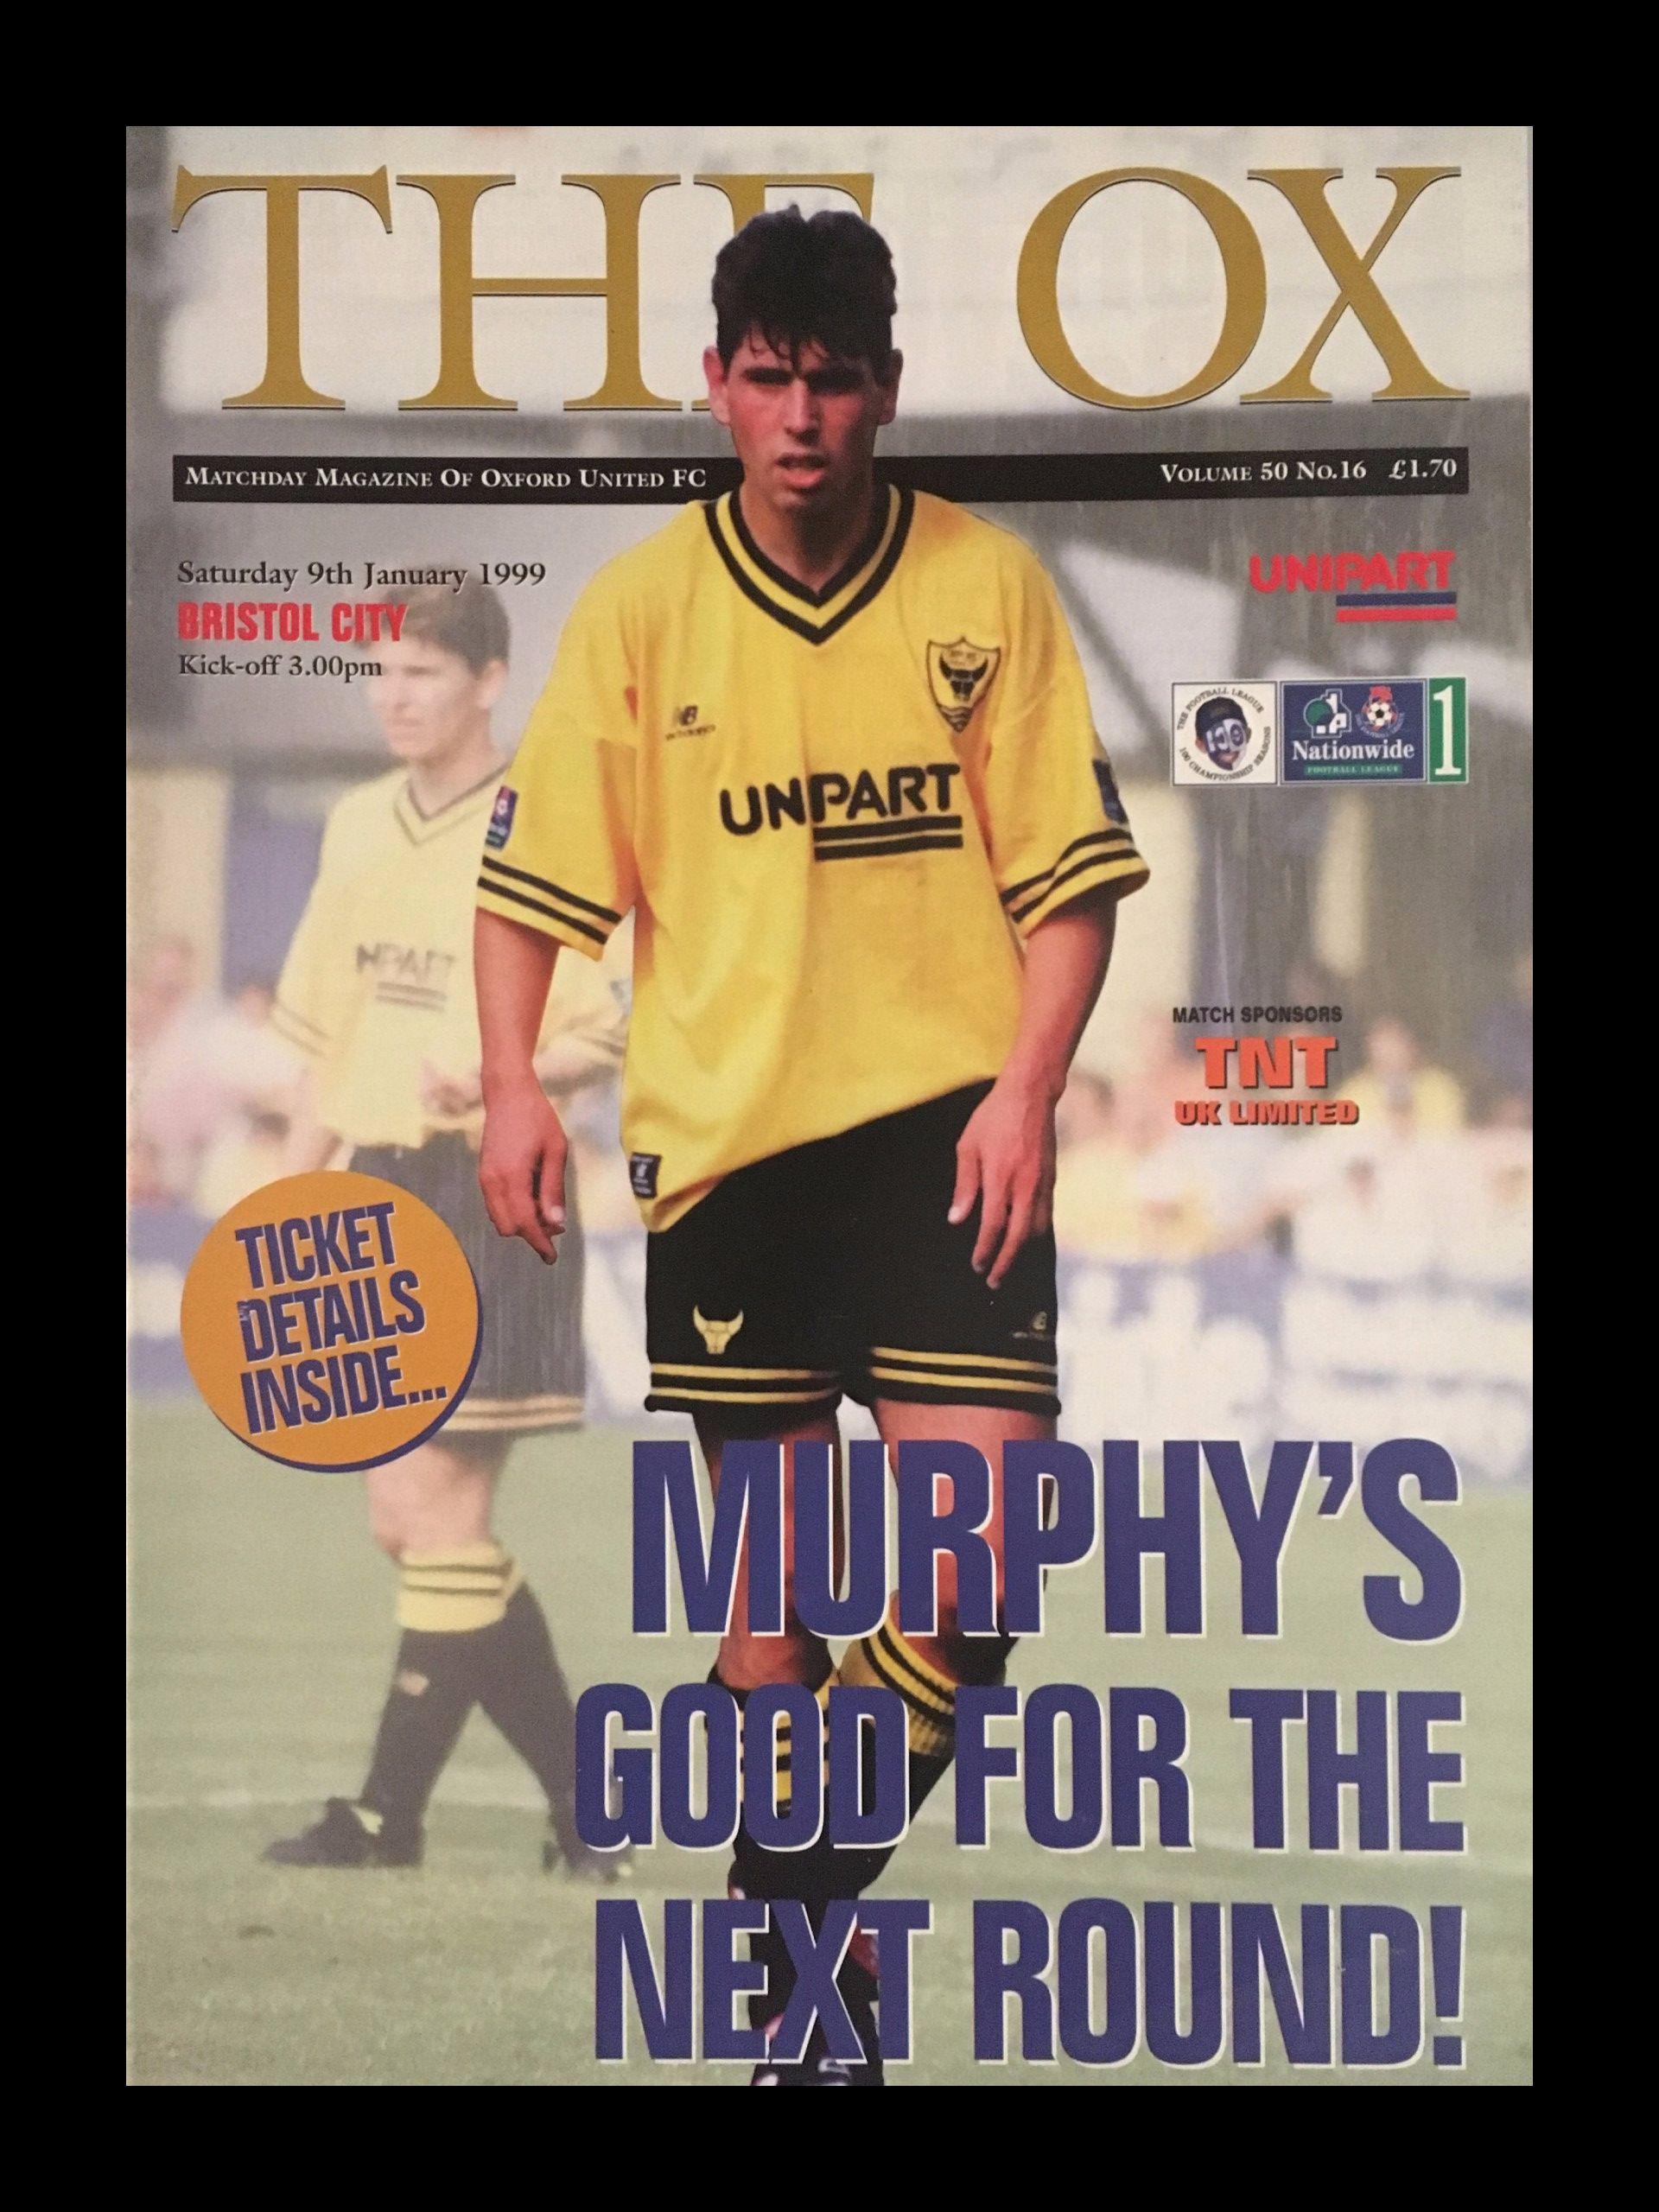 Oxford United v Bristol City 09-01-1999 Programme